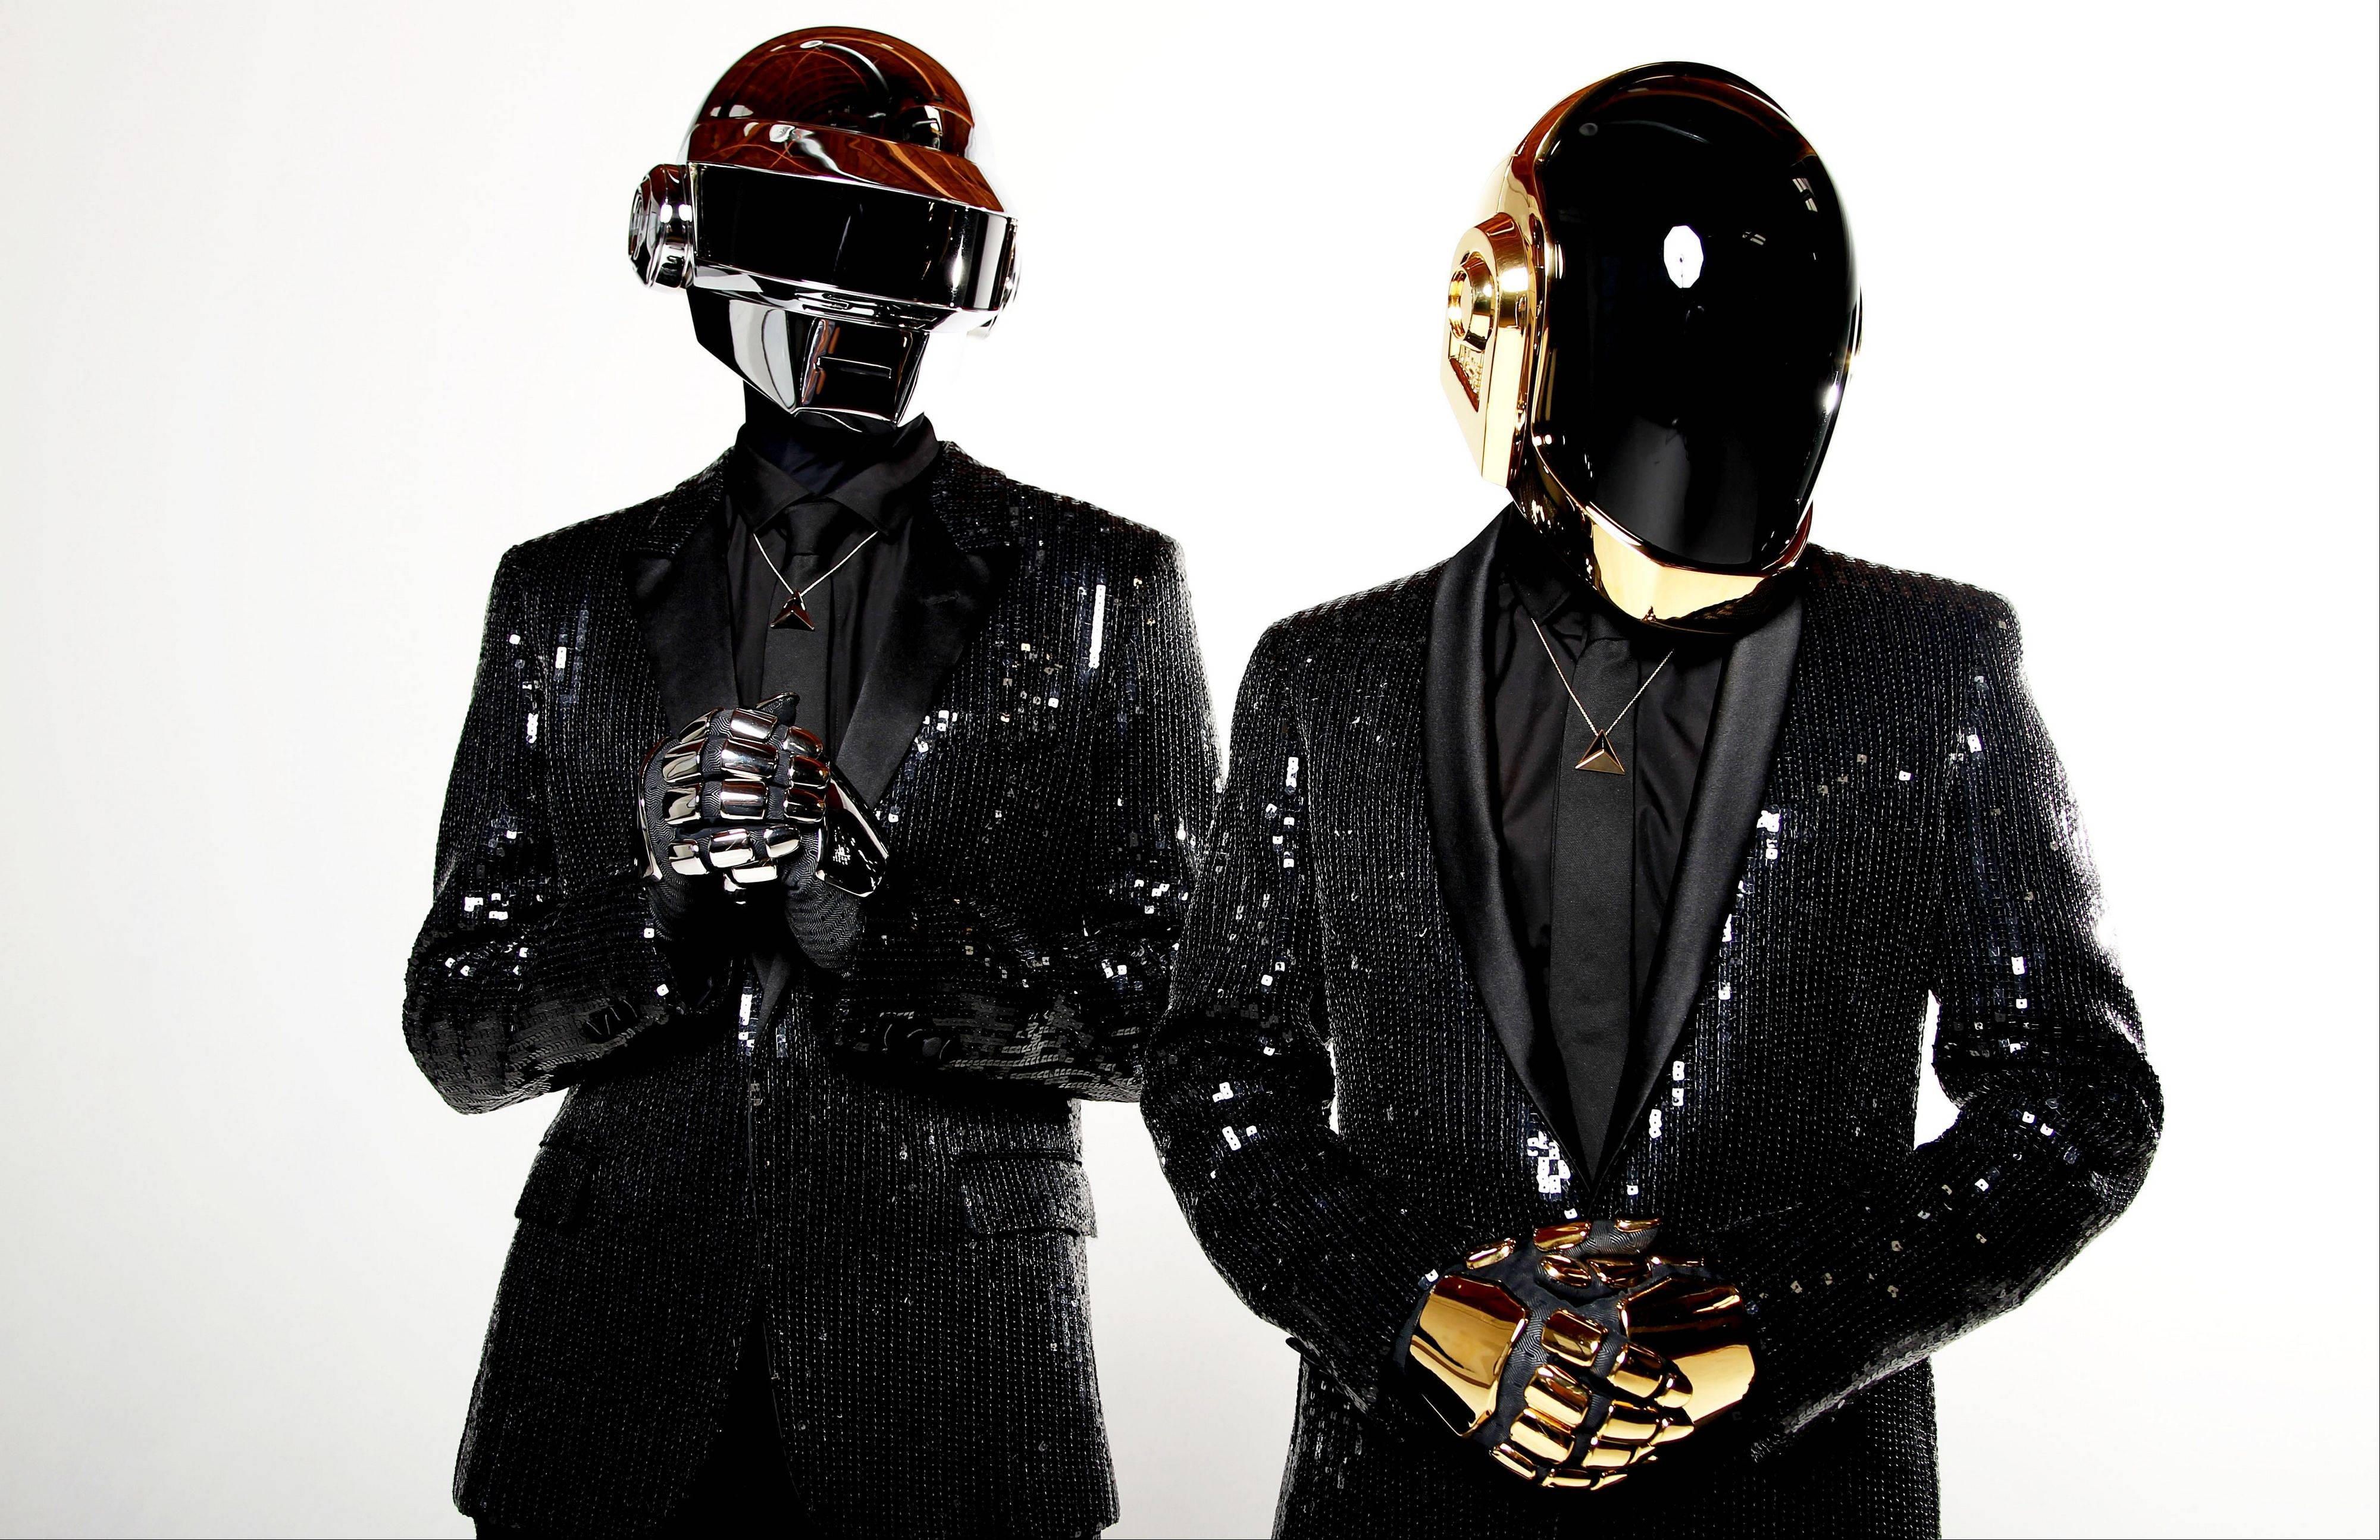 Daft Punk goes outside comfort zone for new album